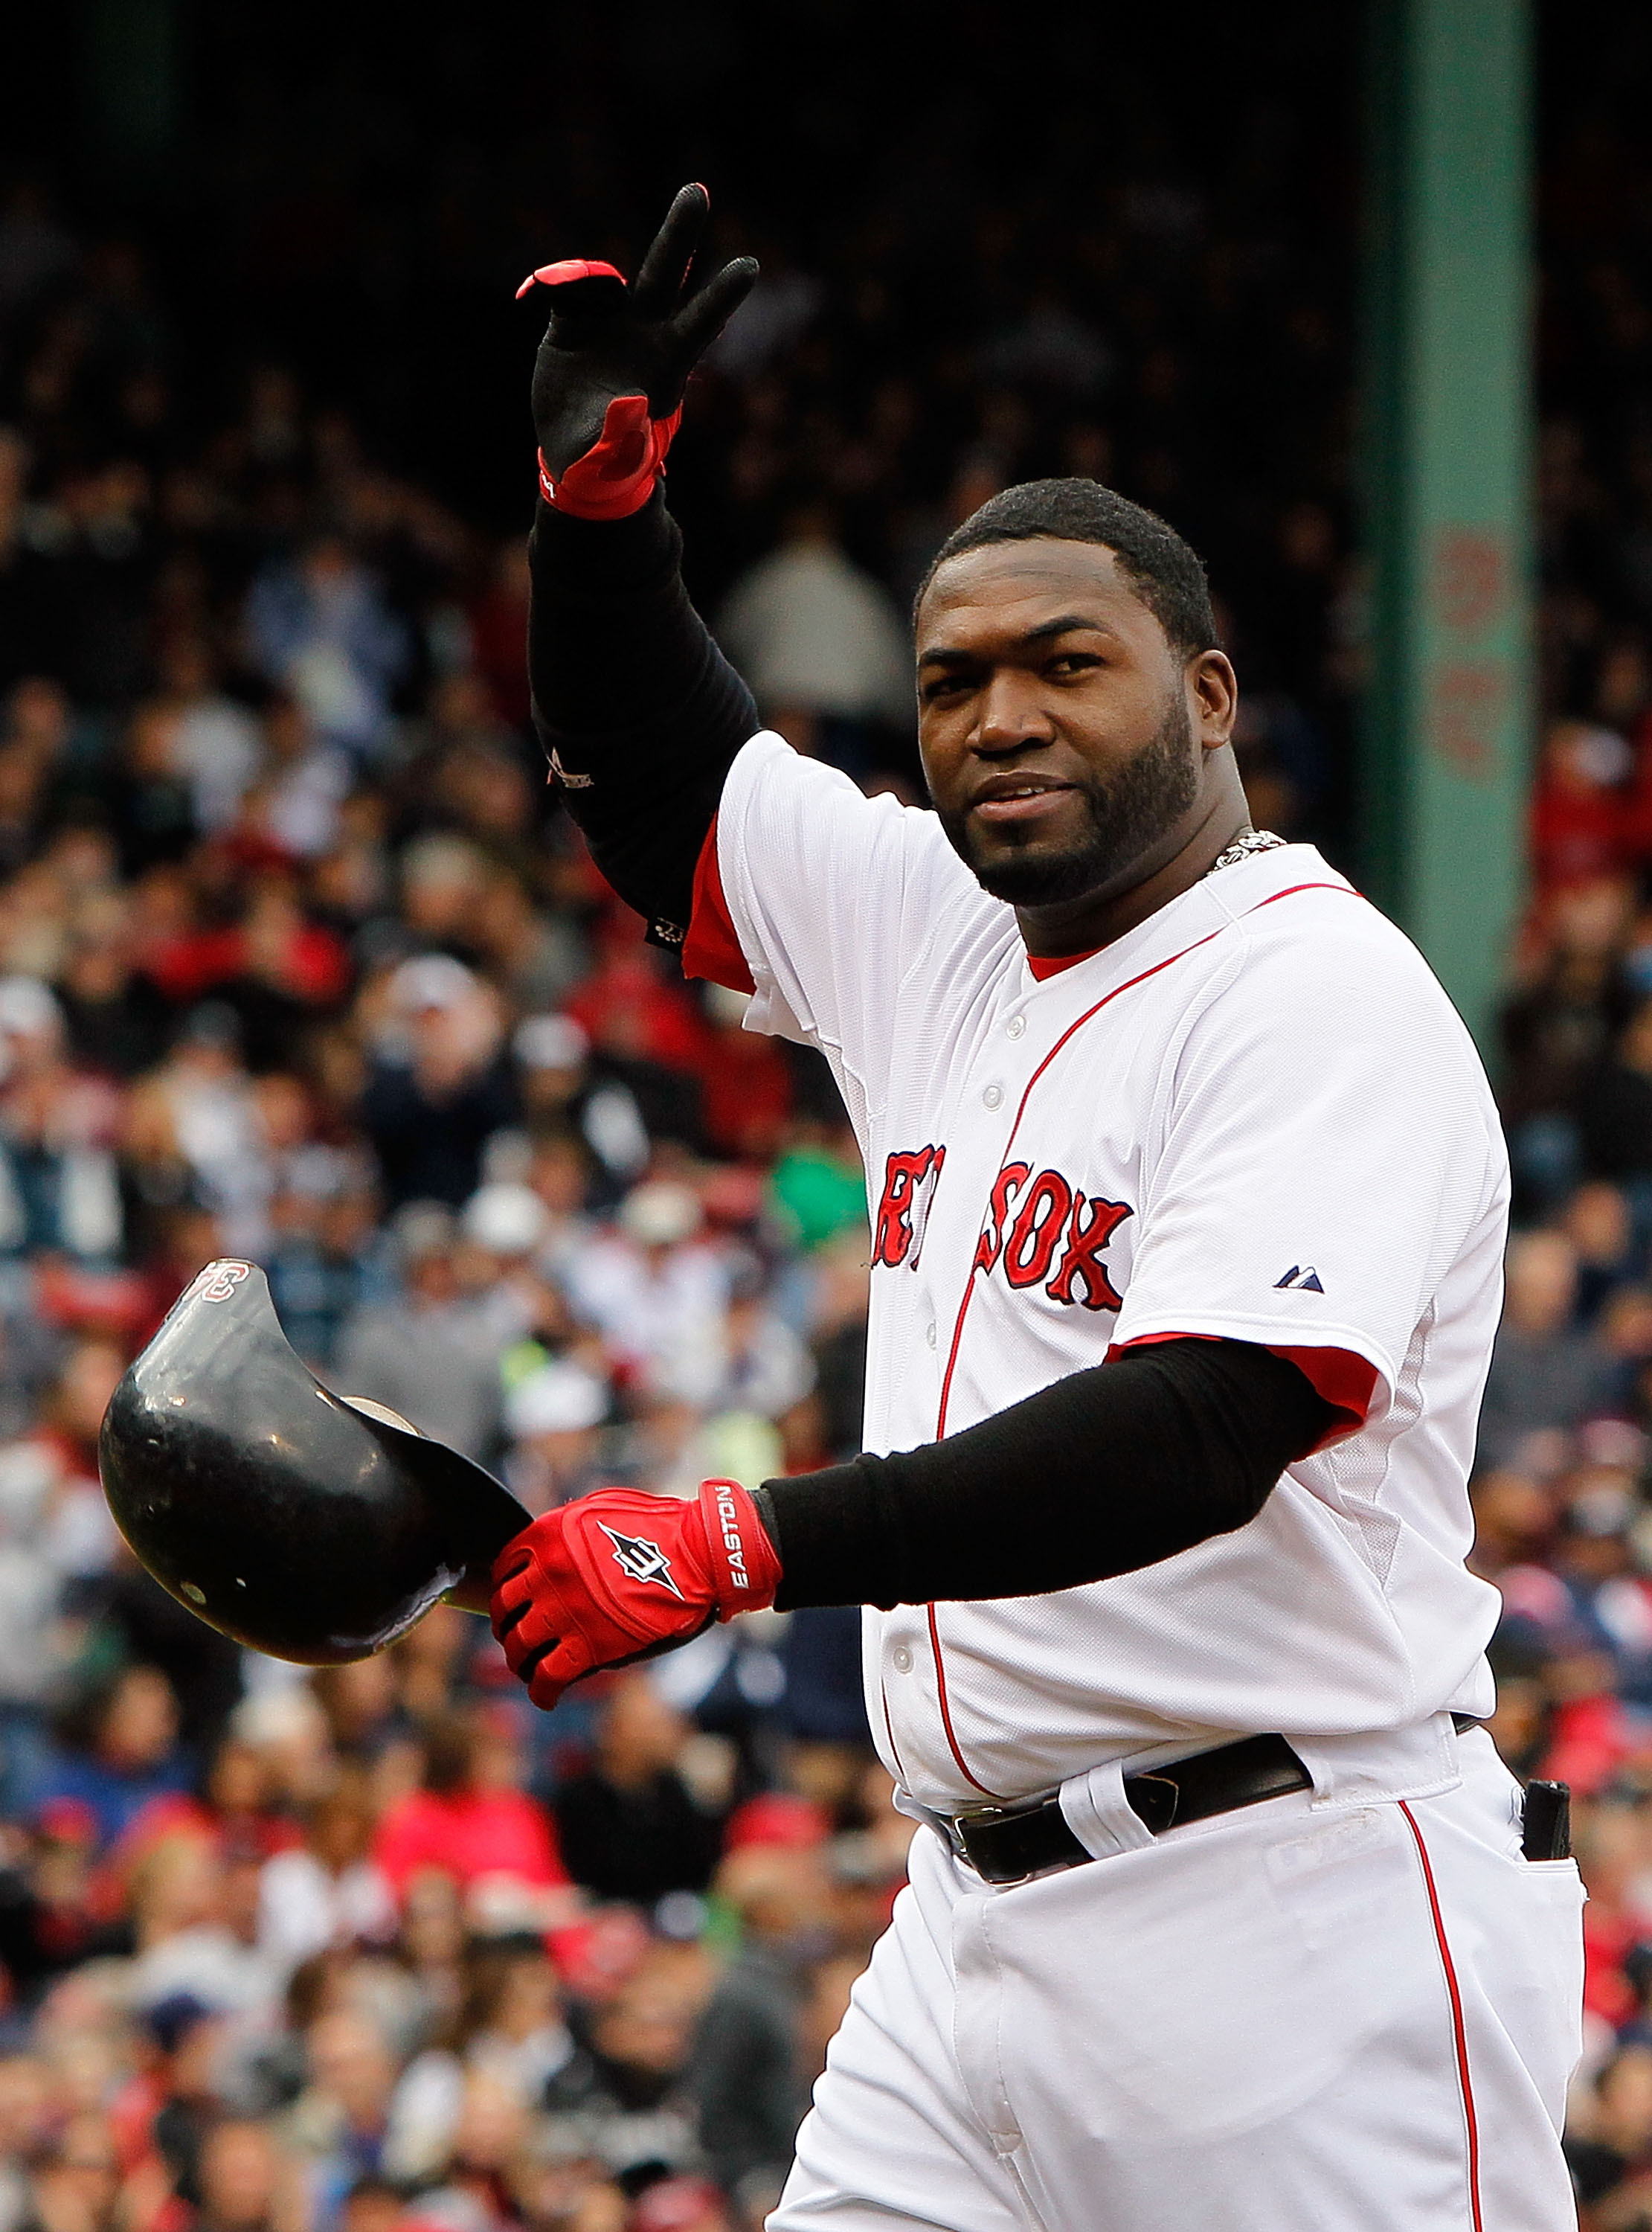 BOSTON - OCTOBER 3: David Ortiz #34 of the Boston Red Sox waves to fans after he was replaced by a pinch runner against the New York Yankees at Fenway Park, October 3, 2010, in Boston, Massachusetts. (Photo by Jim Rogash/Getty Images)